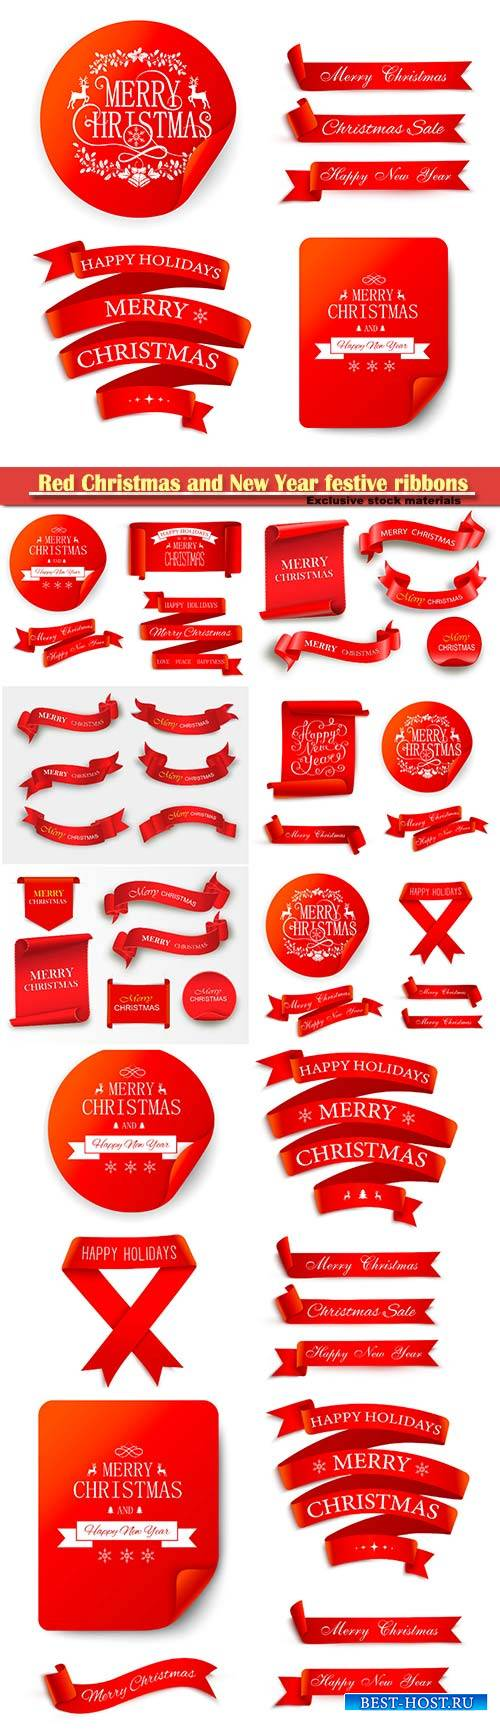 Red Christmas and New Year festive ribbons and vector stickers